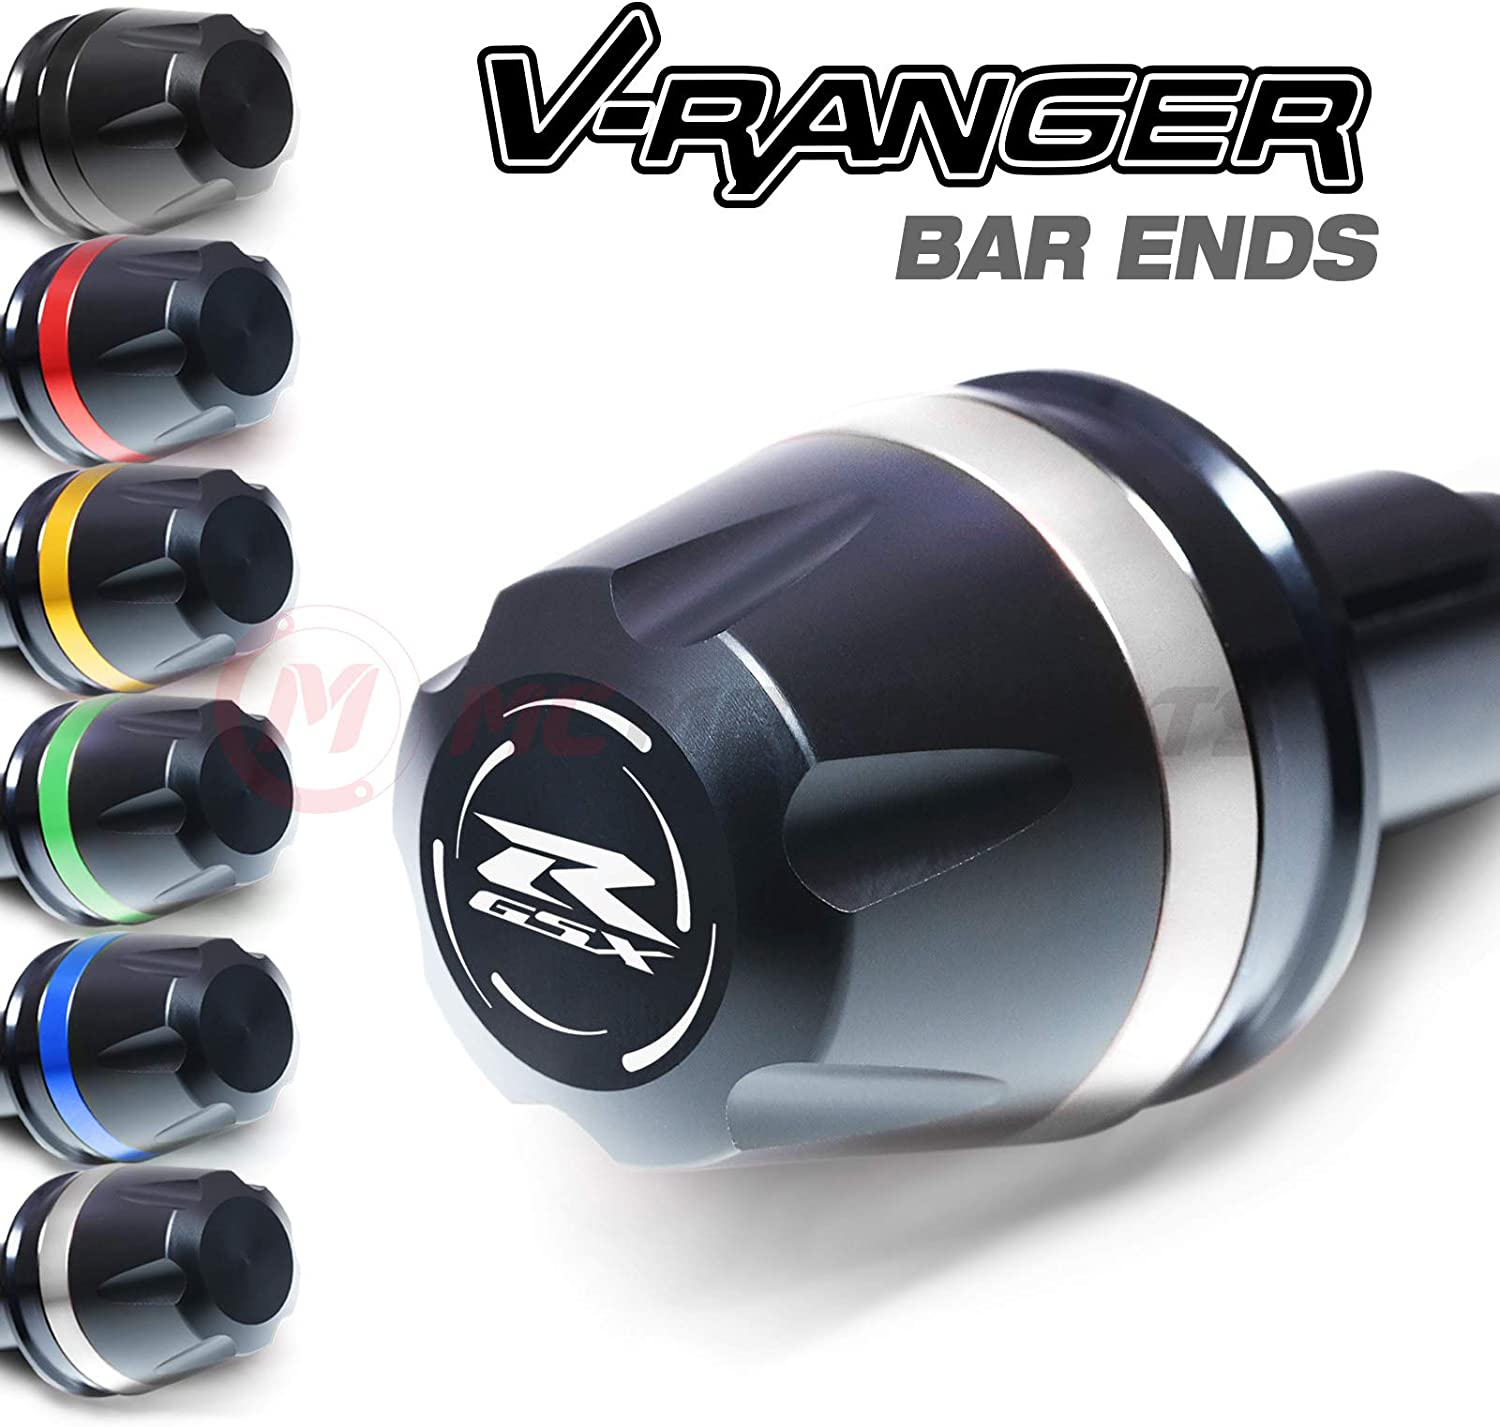 MC Motoparts V-RANGER CNC Bar Ends Sliders Logo For Suzuki GSX-R GSXR 600 750 96-19 17 18 GSX-R 1000 K1-K9 L1-L9 Black